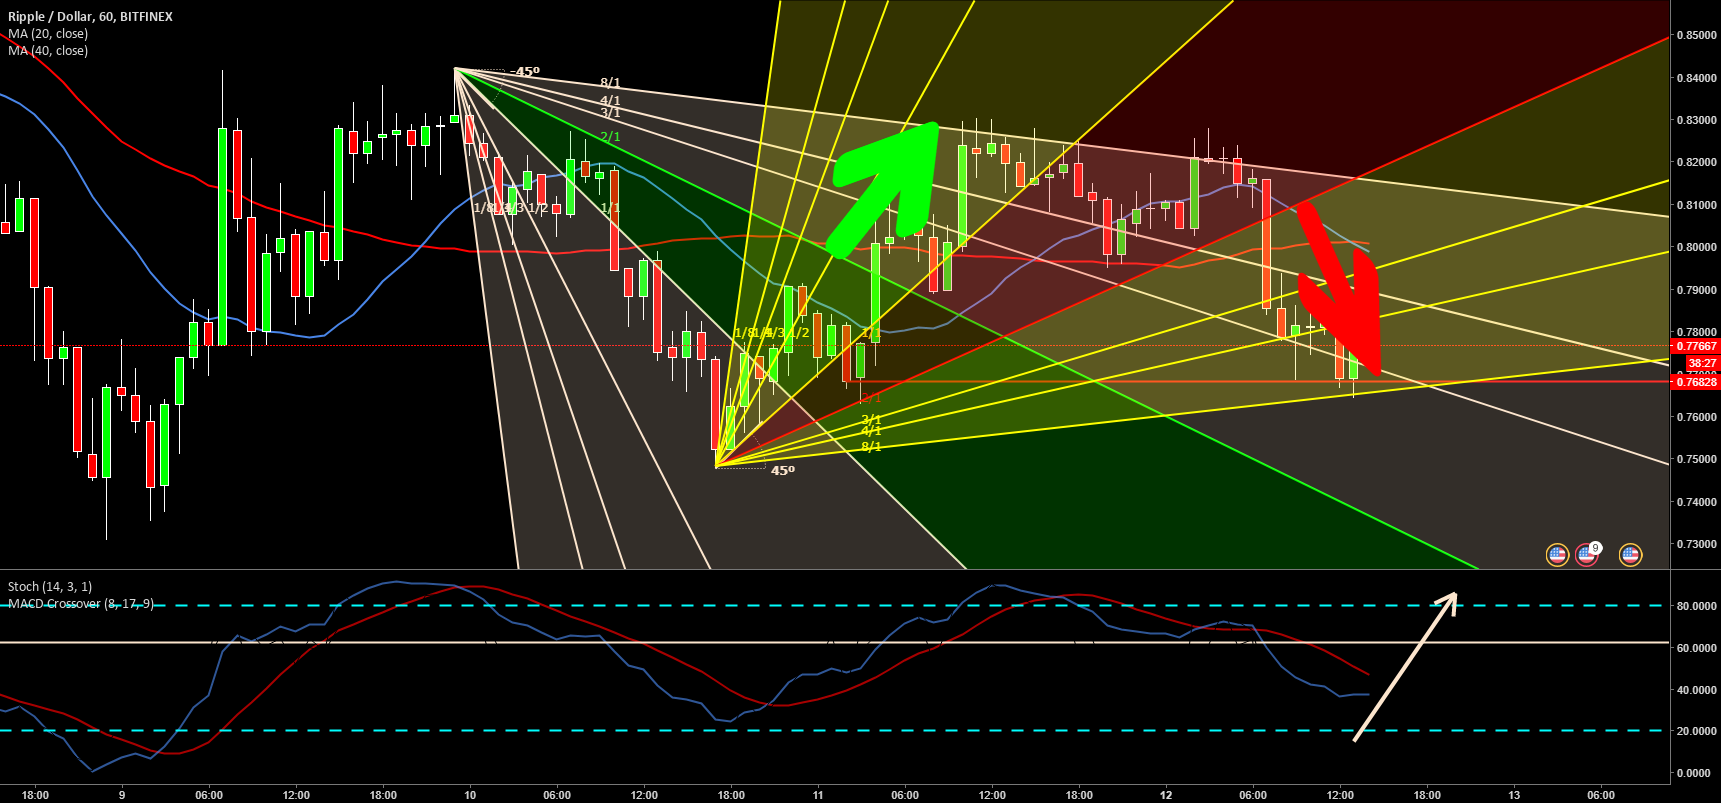 XRPUSD 1H GANN FAN TRADING STRATEGY for BITFINEX:XRPUSD by